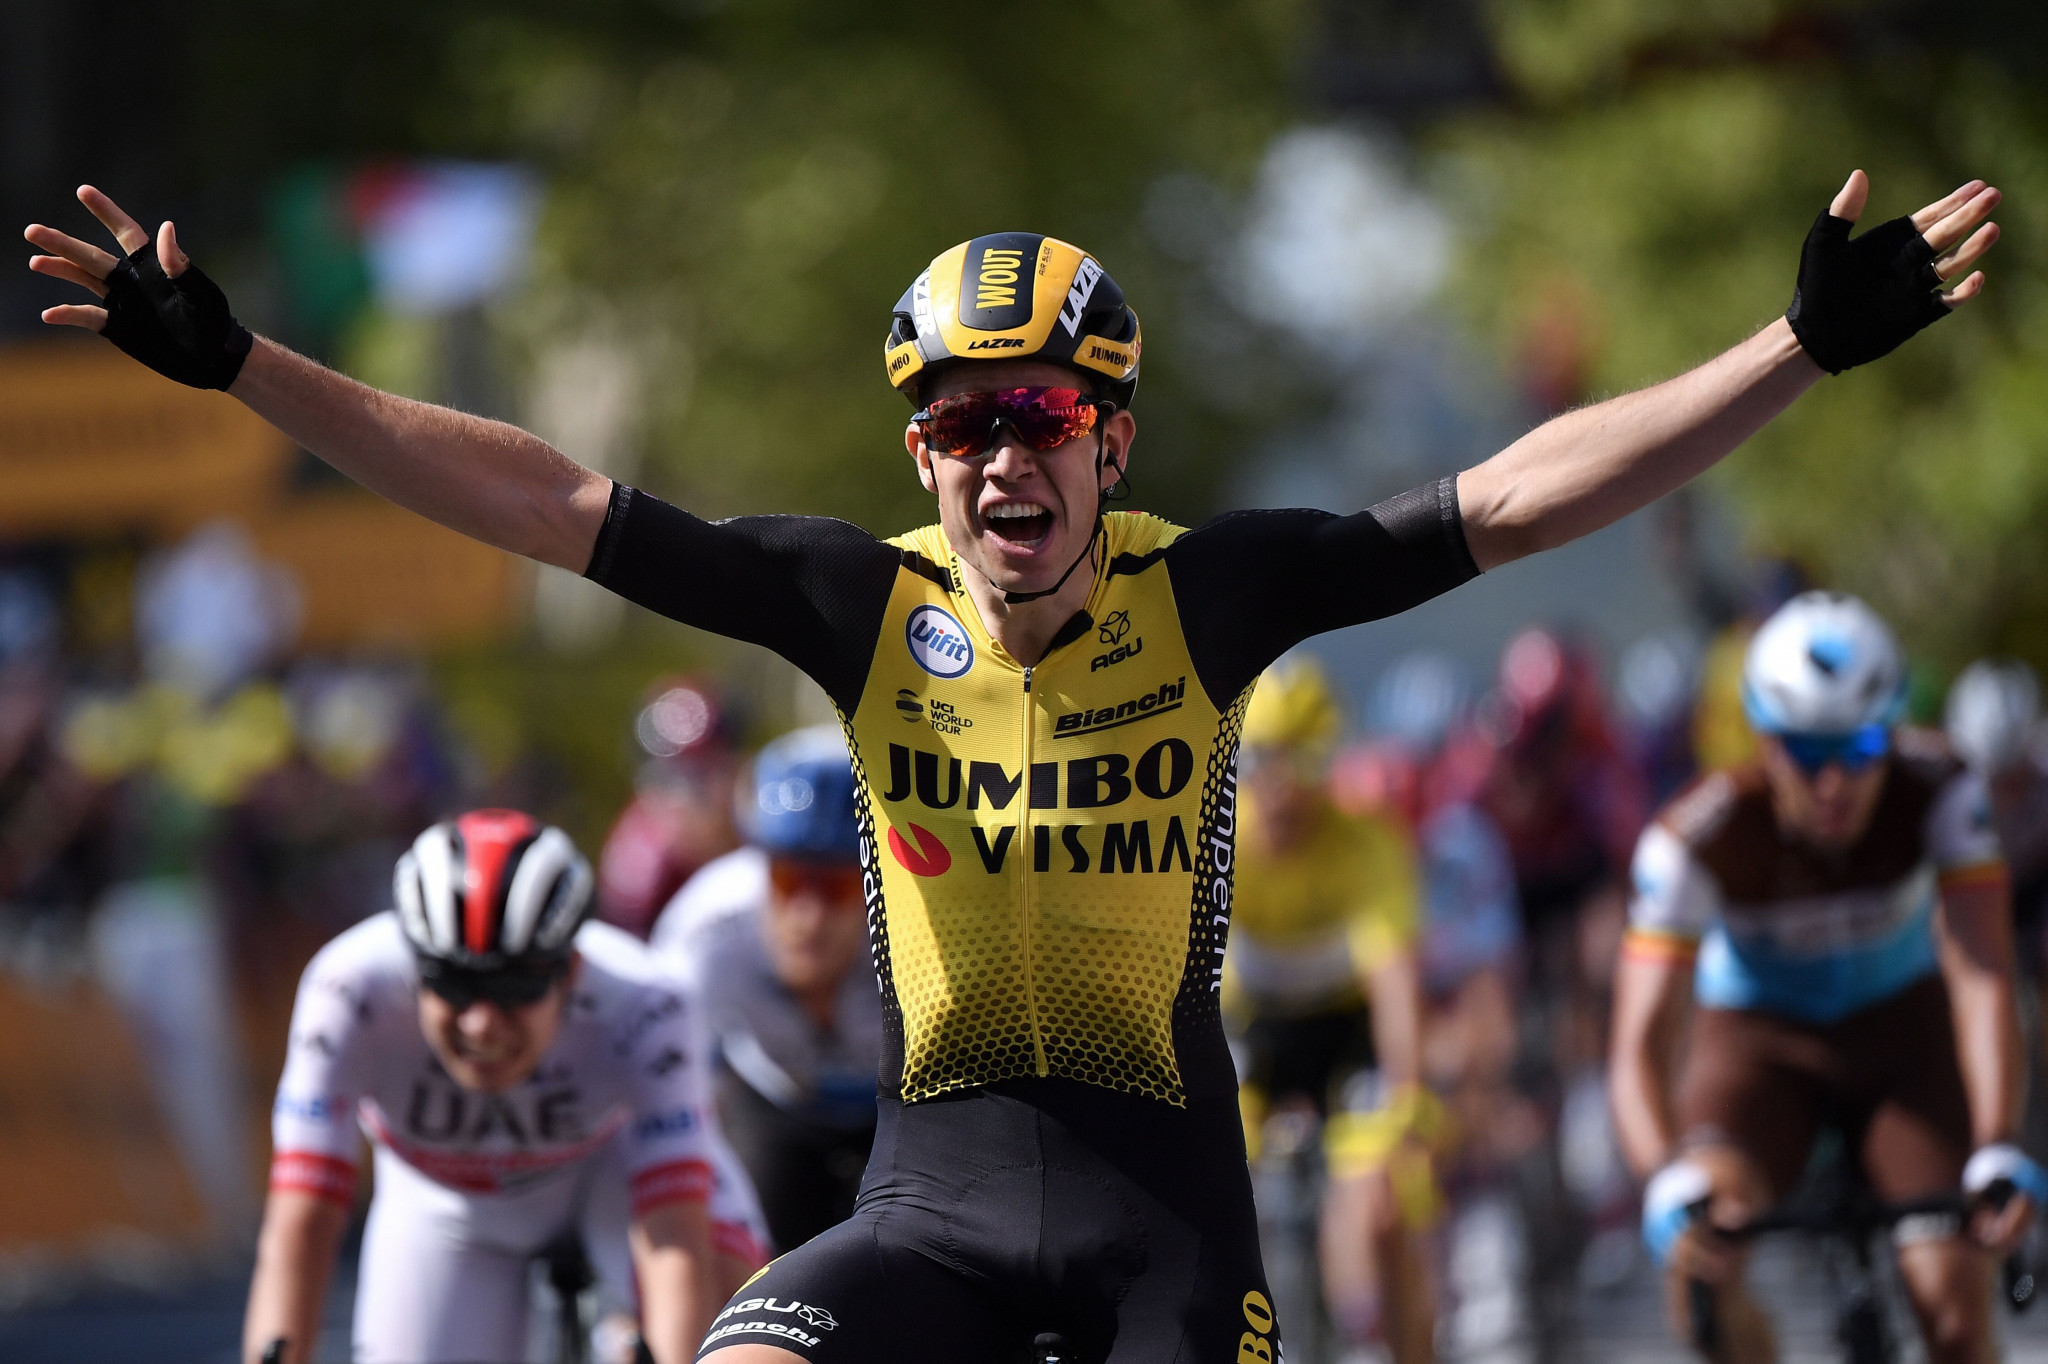 Van Aert claims first Tour de France stage victory as Alaphilippe maintains lead